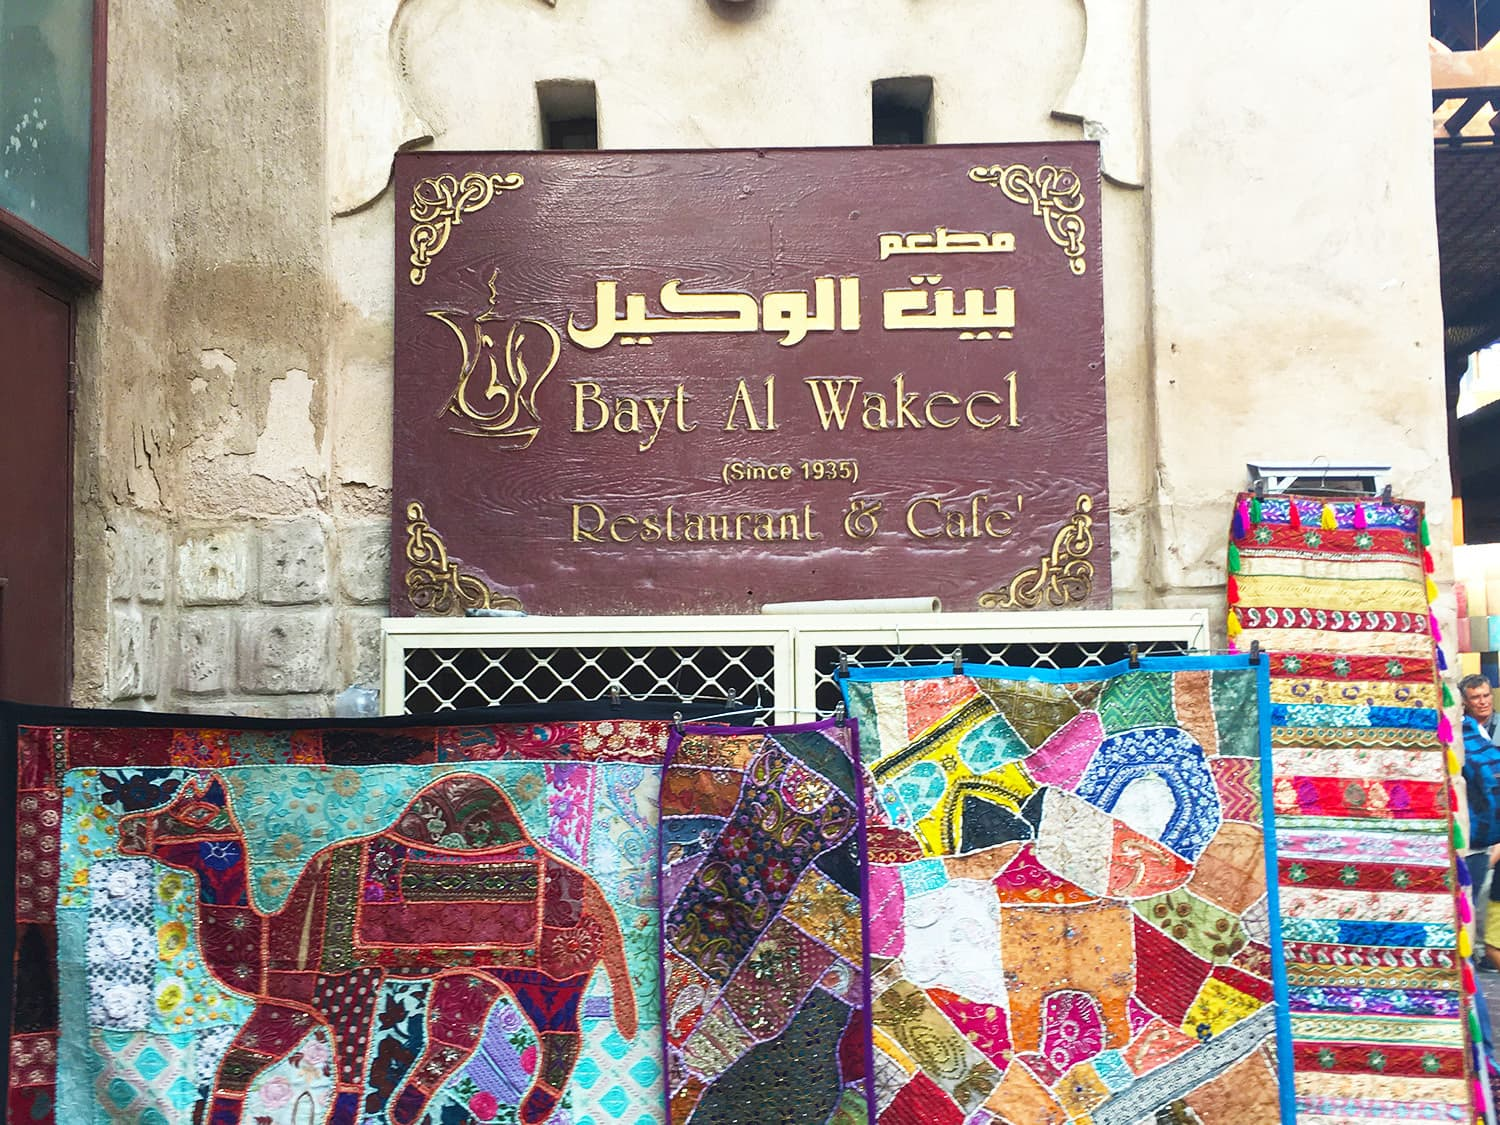 Signboard for Bayt Al Wakeel, one of the oldest houses in Dubai that was built in 1935.